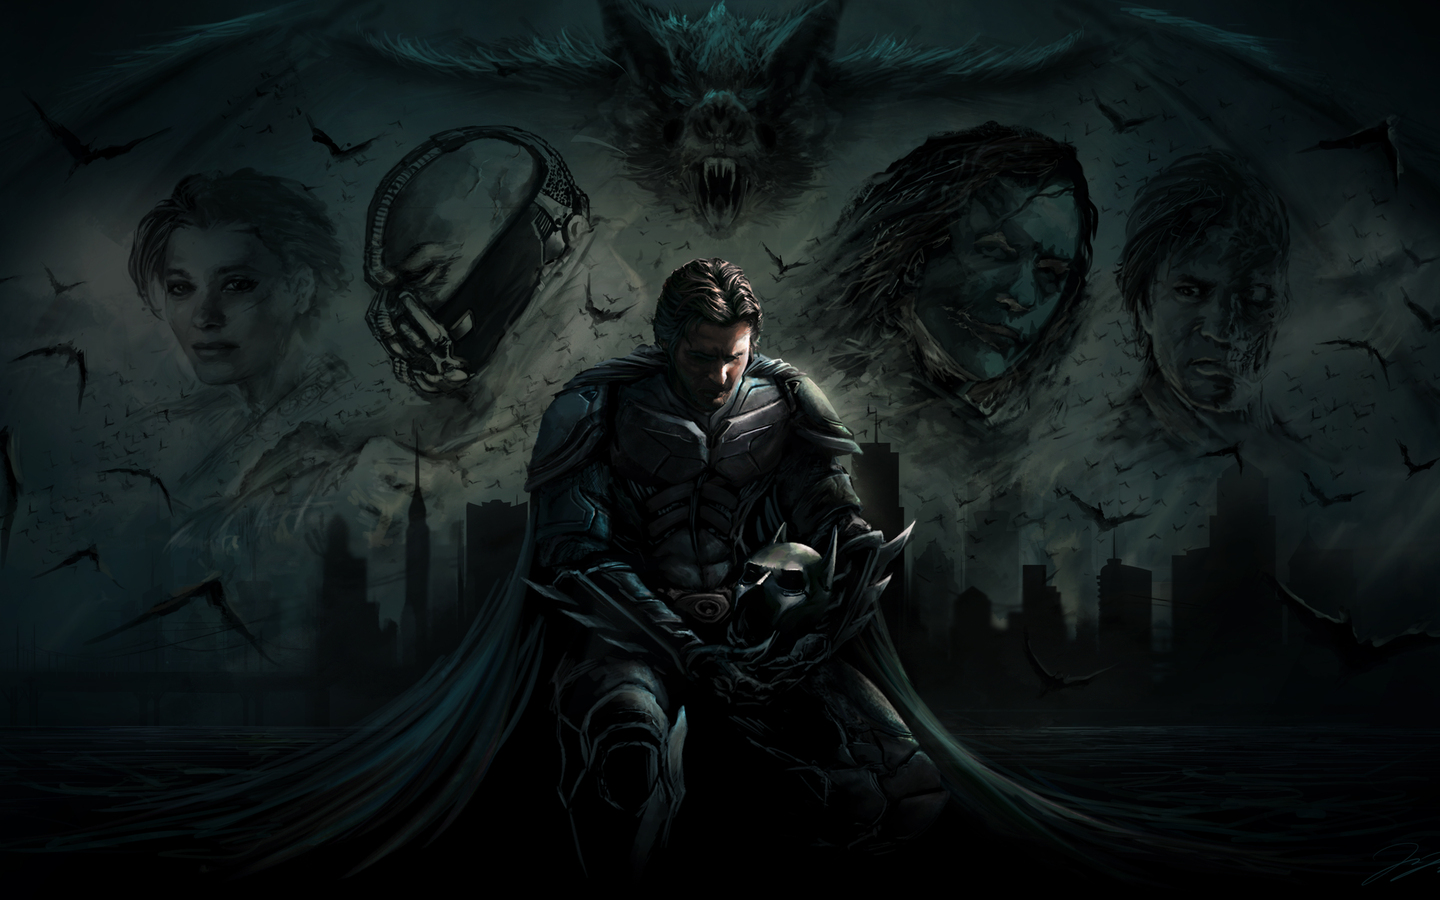 dark-knight-artwork-new-5d.jpg